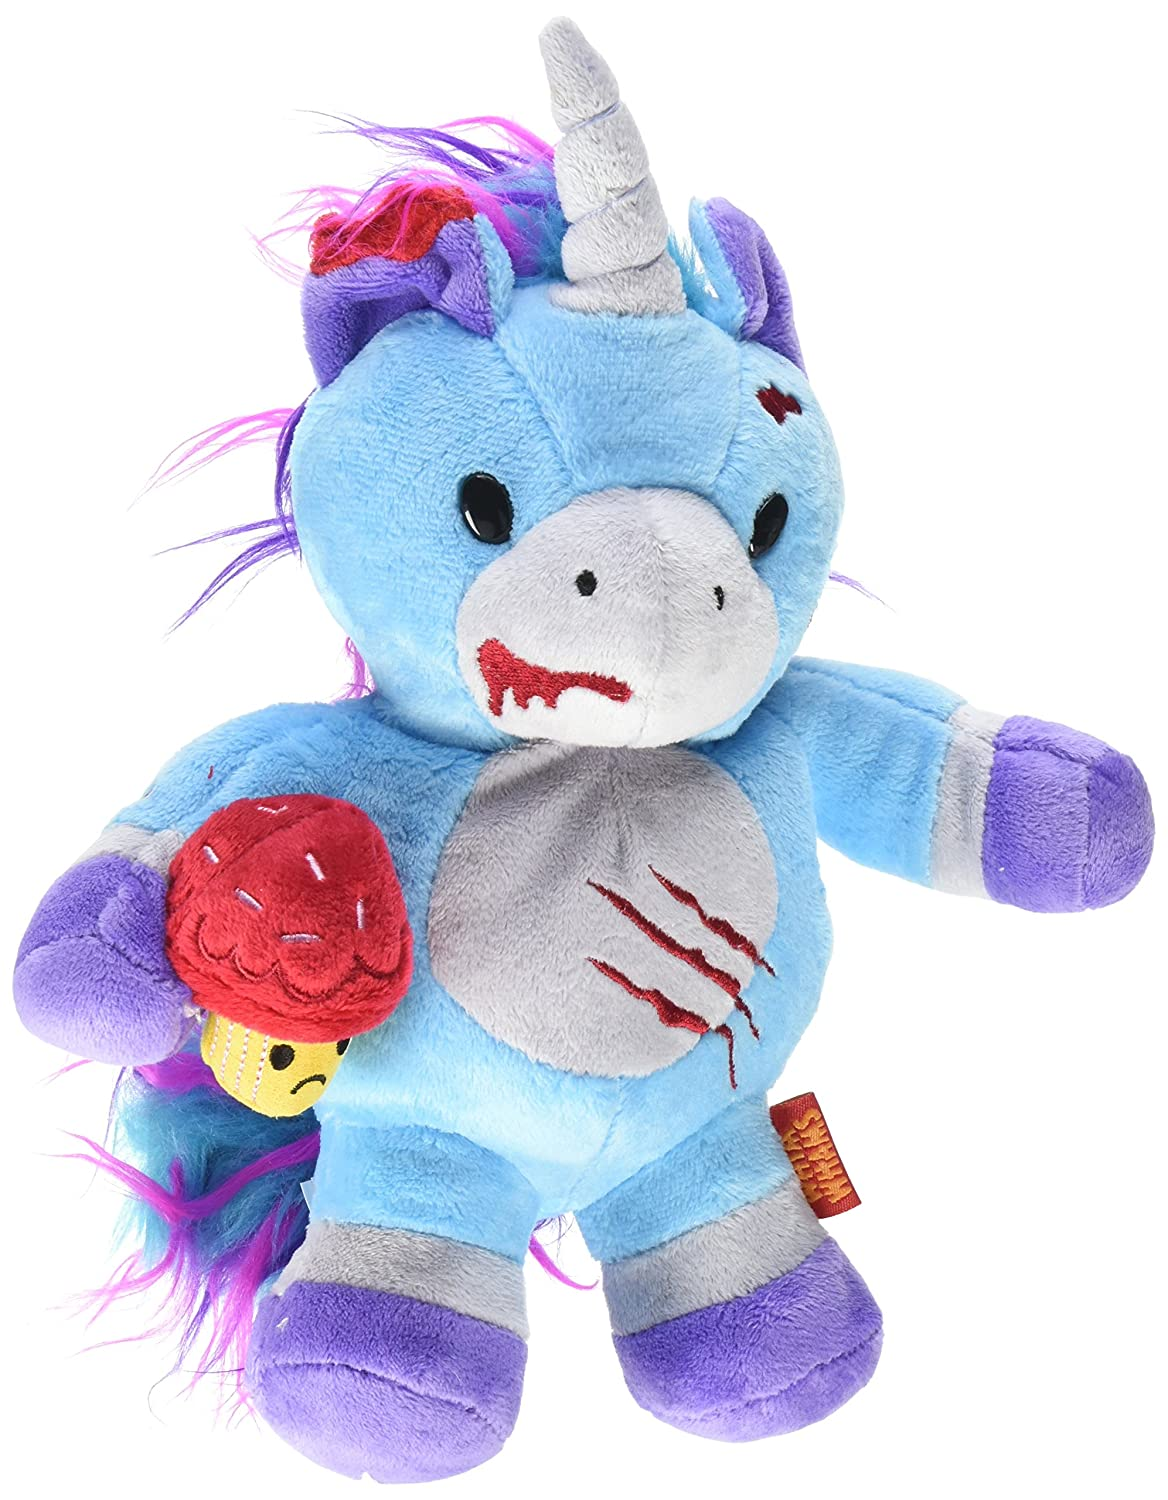 WhimWham Unicorn Cupcake Zombie 8-Inch Plush Soft Toy Stuffed Animal